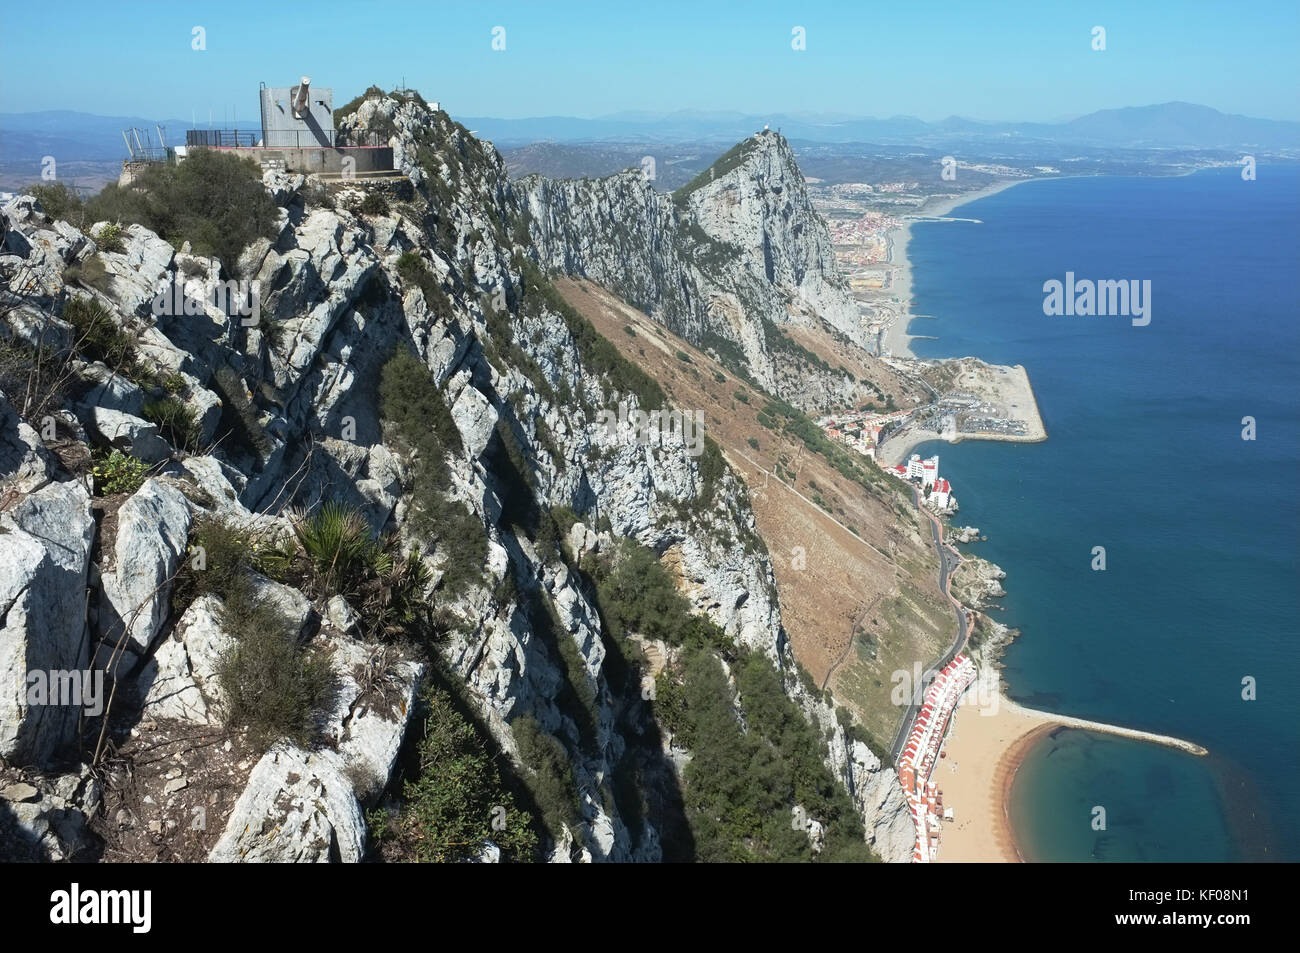 The view of the east of the rock towards Spain from O'Hara's Battery, Gibraltar, September 2017 - Stock Image